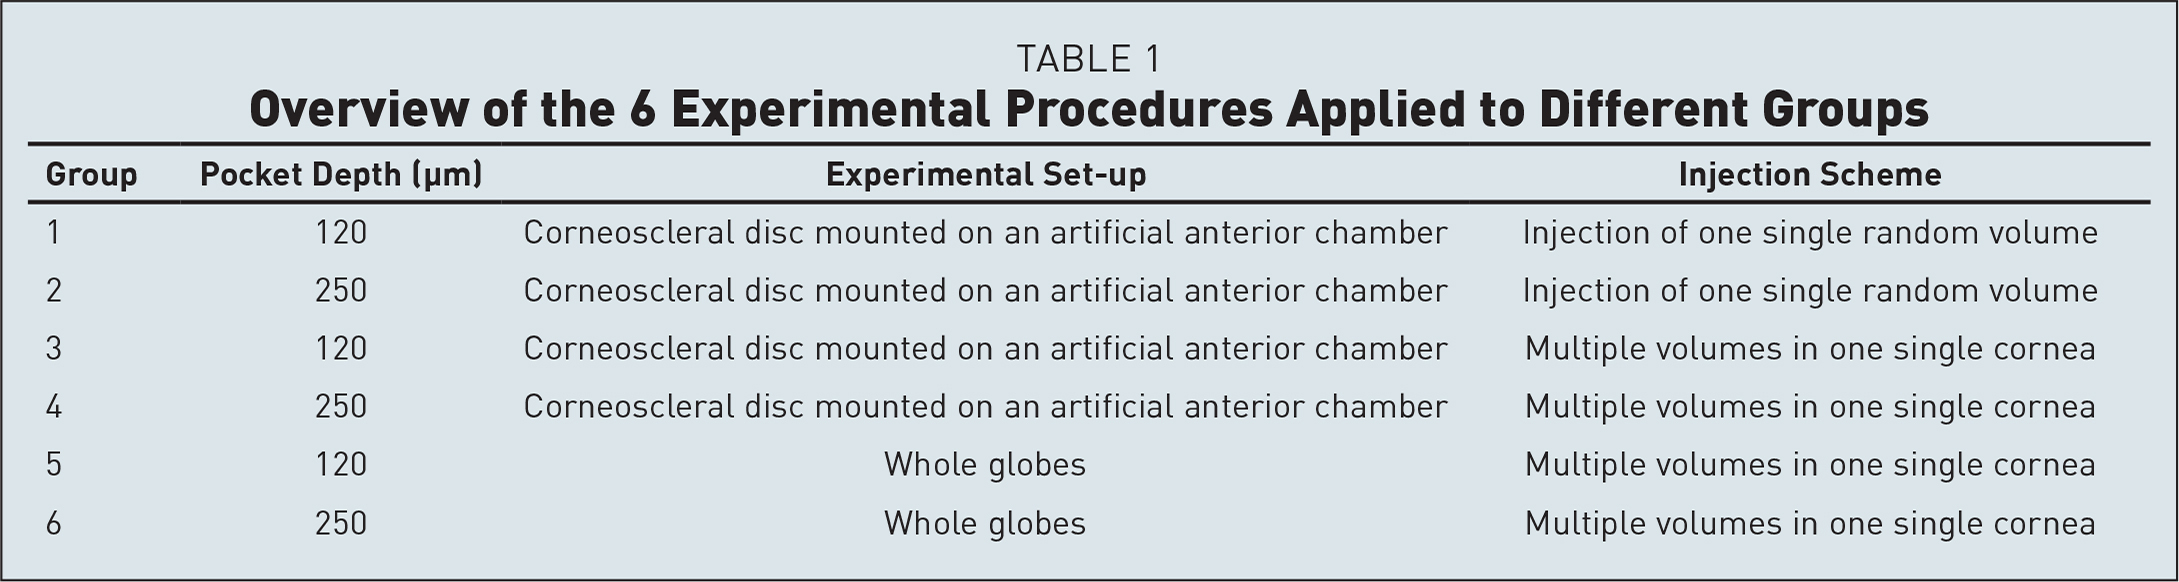 Overview of the 6 Experimental Procedures Applied to Different Groups